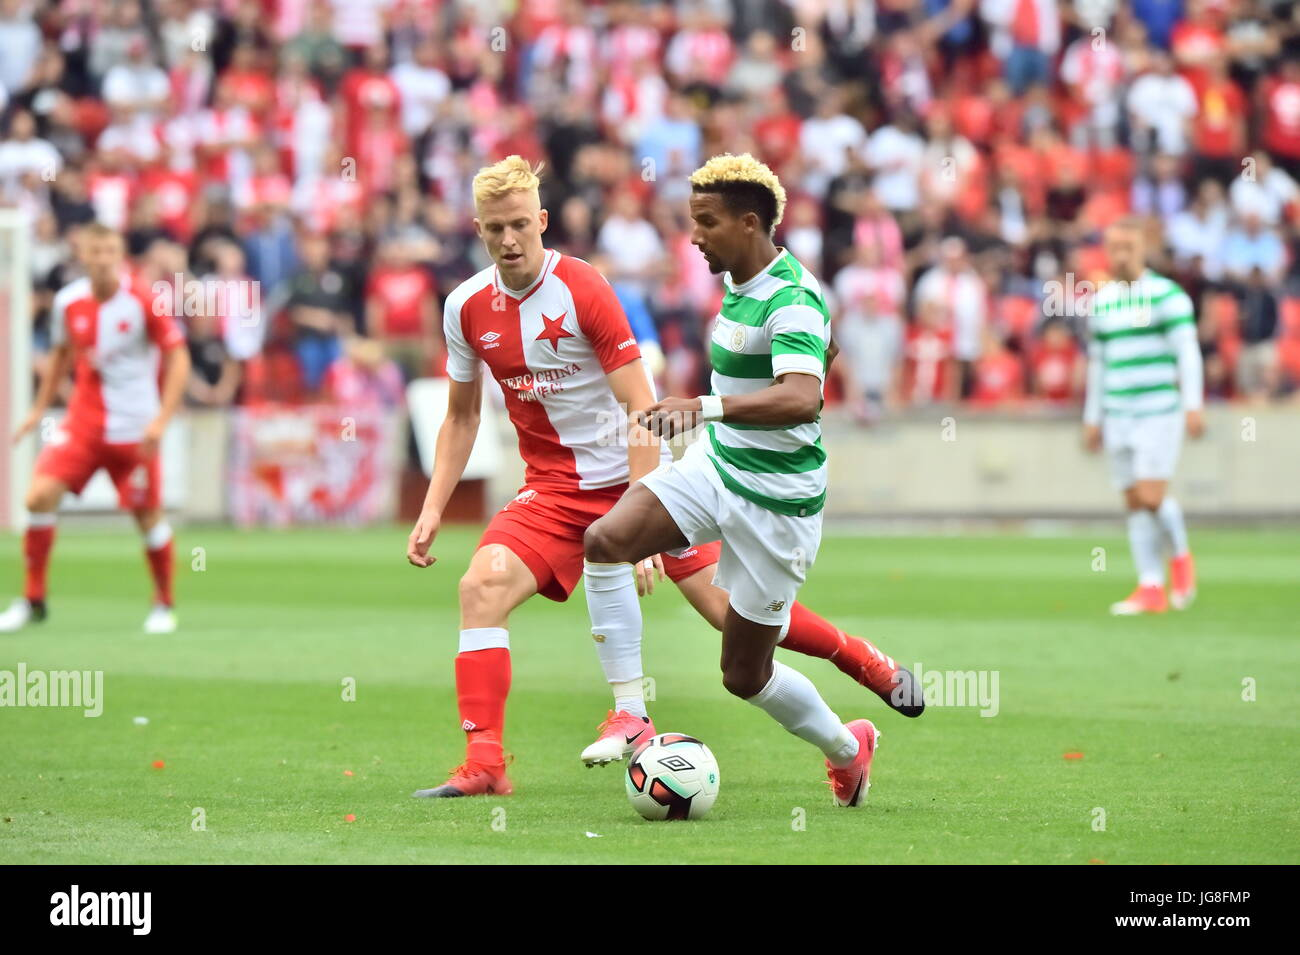 Prague, Czech Republic. 4th July, 2017. Michal Frydrych of Slavia, left, and Scott Sinclair of Celtic in action - Stock Image